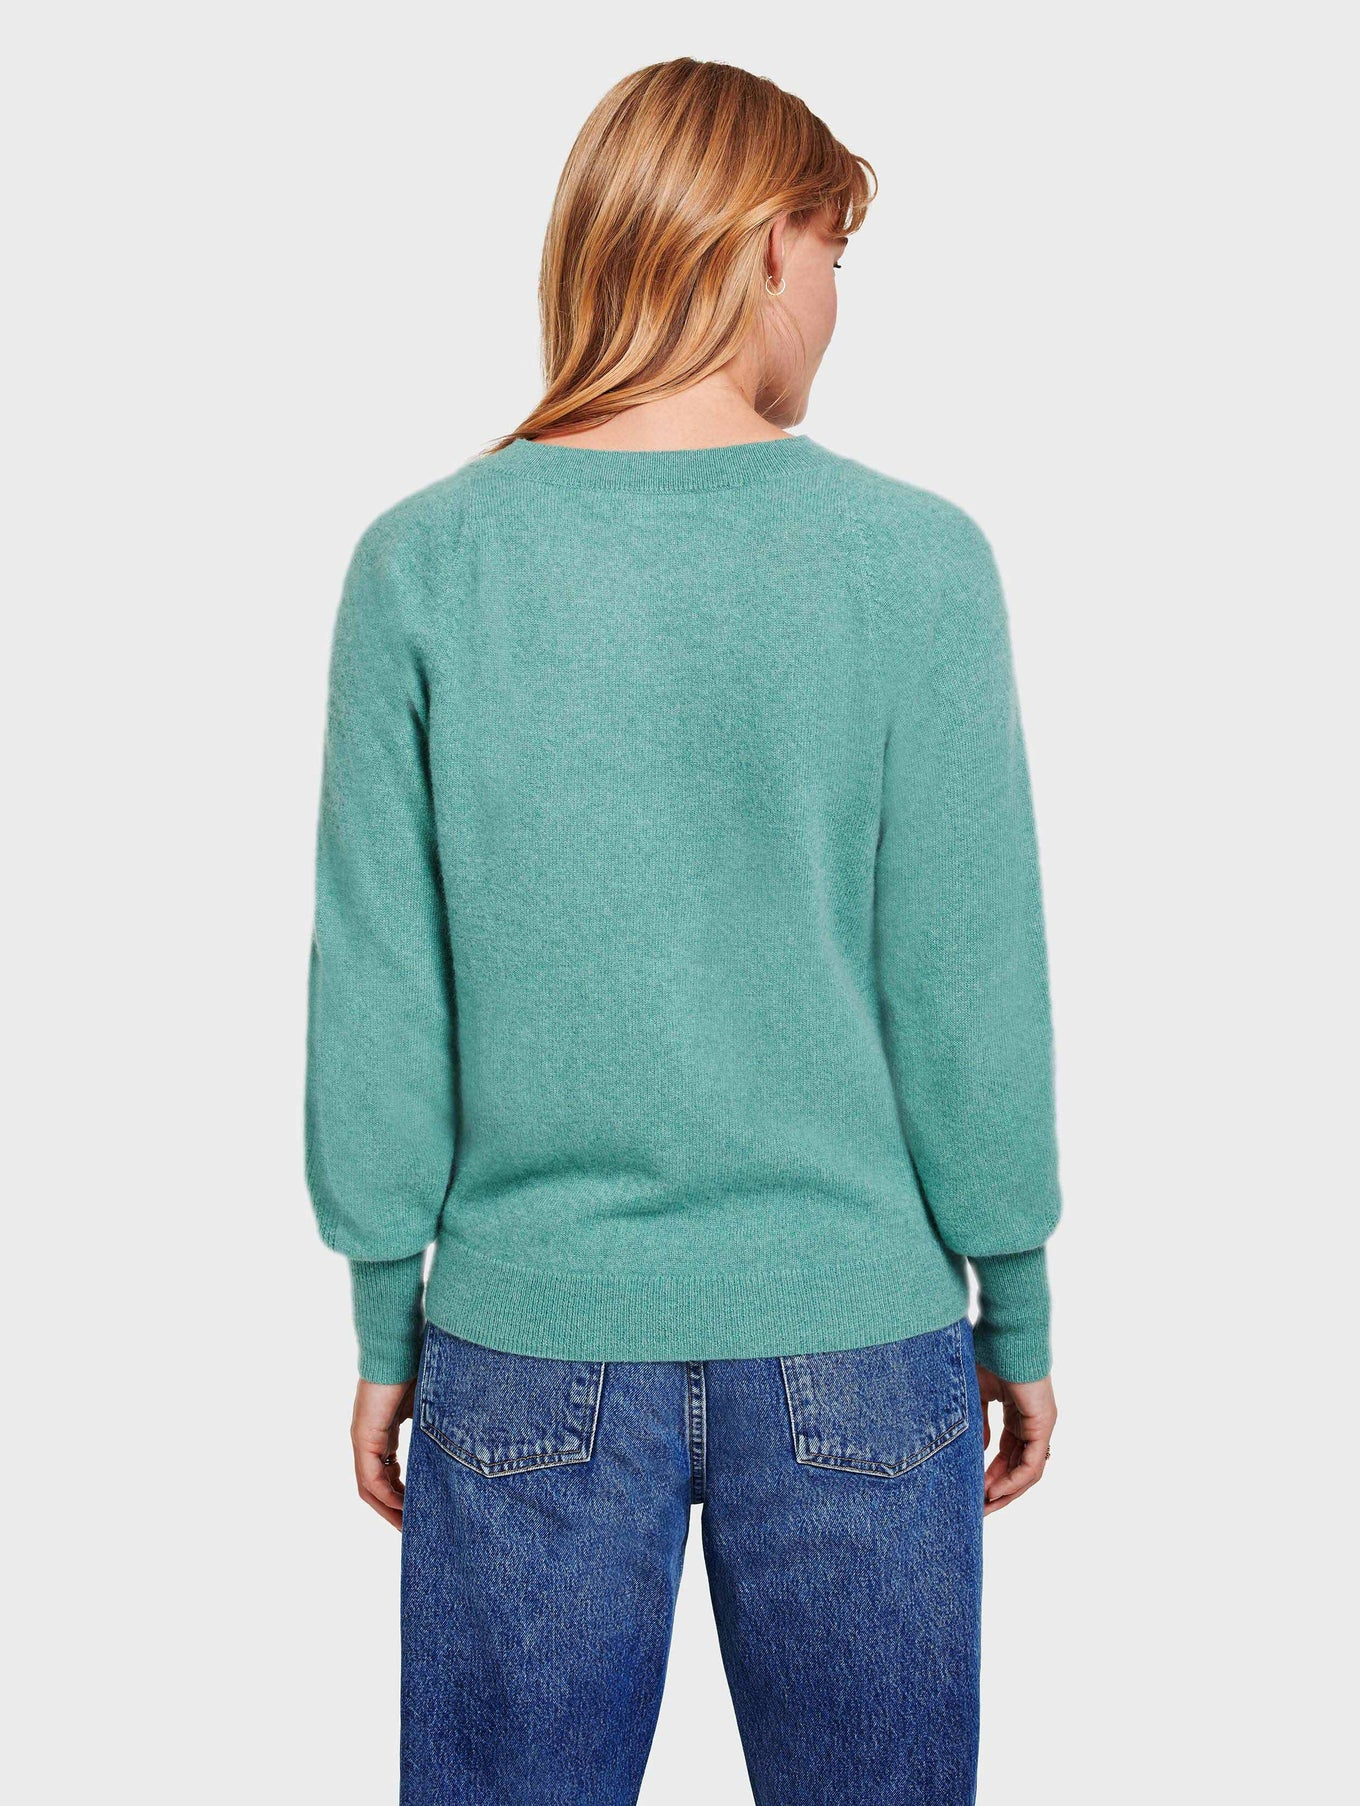 Cashmere Blouson Sleeve Crewneck - Dusty Jade Heather - Image 4